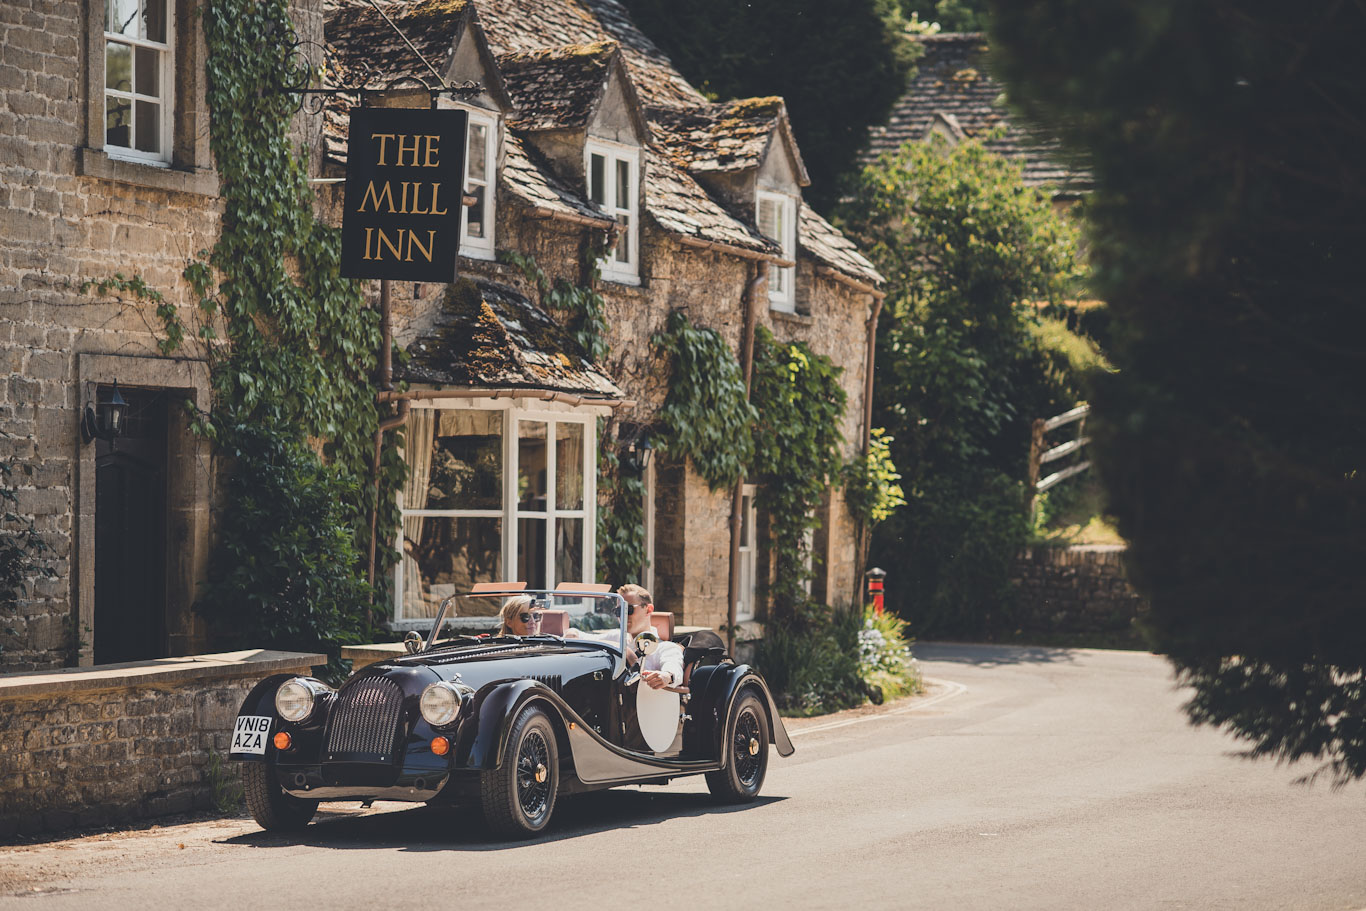 Morgan Driving Tours in the UK